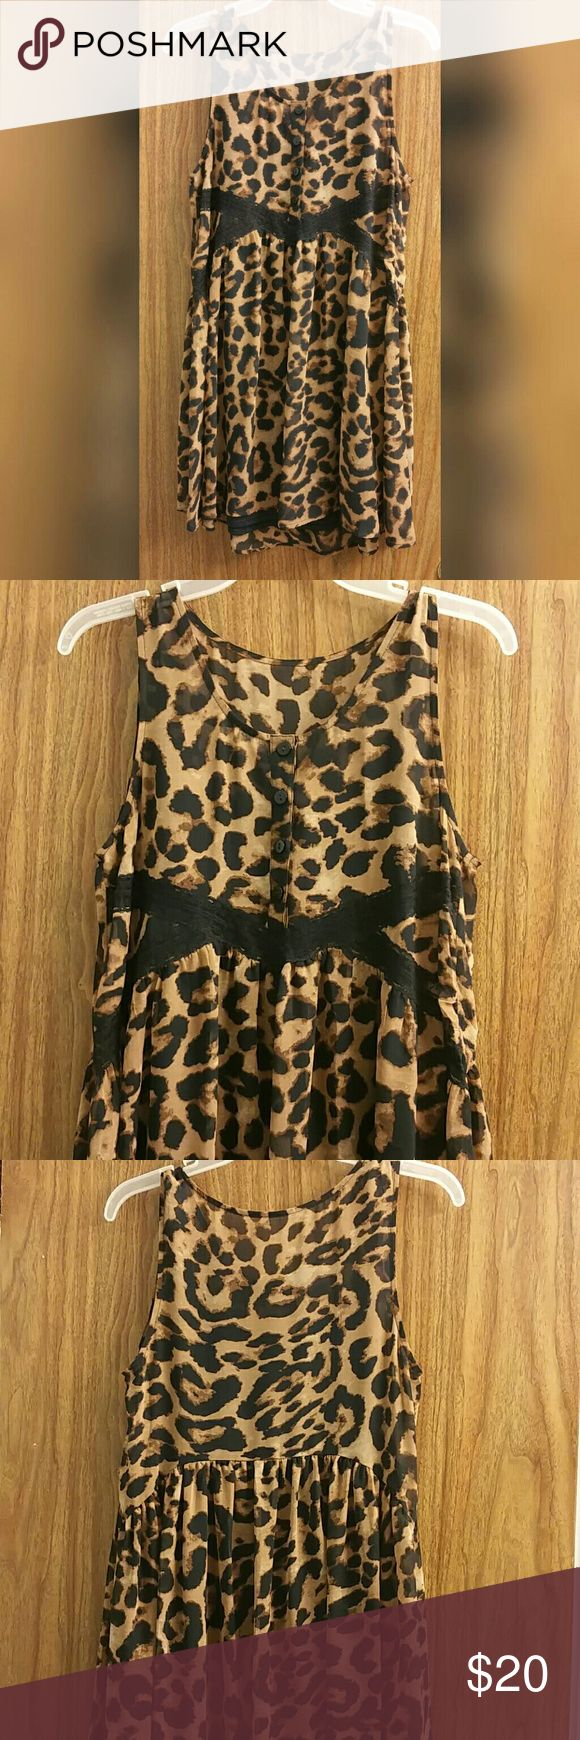 FAREWELL SUMMER SALE Express Leopard Print Dress Beautiful sheer polyester/rayon dress has black lace details along the sides, a gorgeous leopard skin print, and a book style fit to flatter any figure. Unavailable in stores, this beauty has been worn only once! Express Dresses